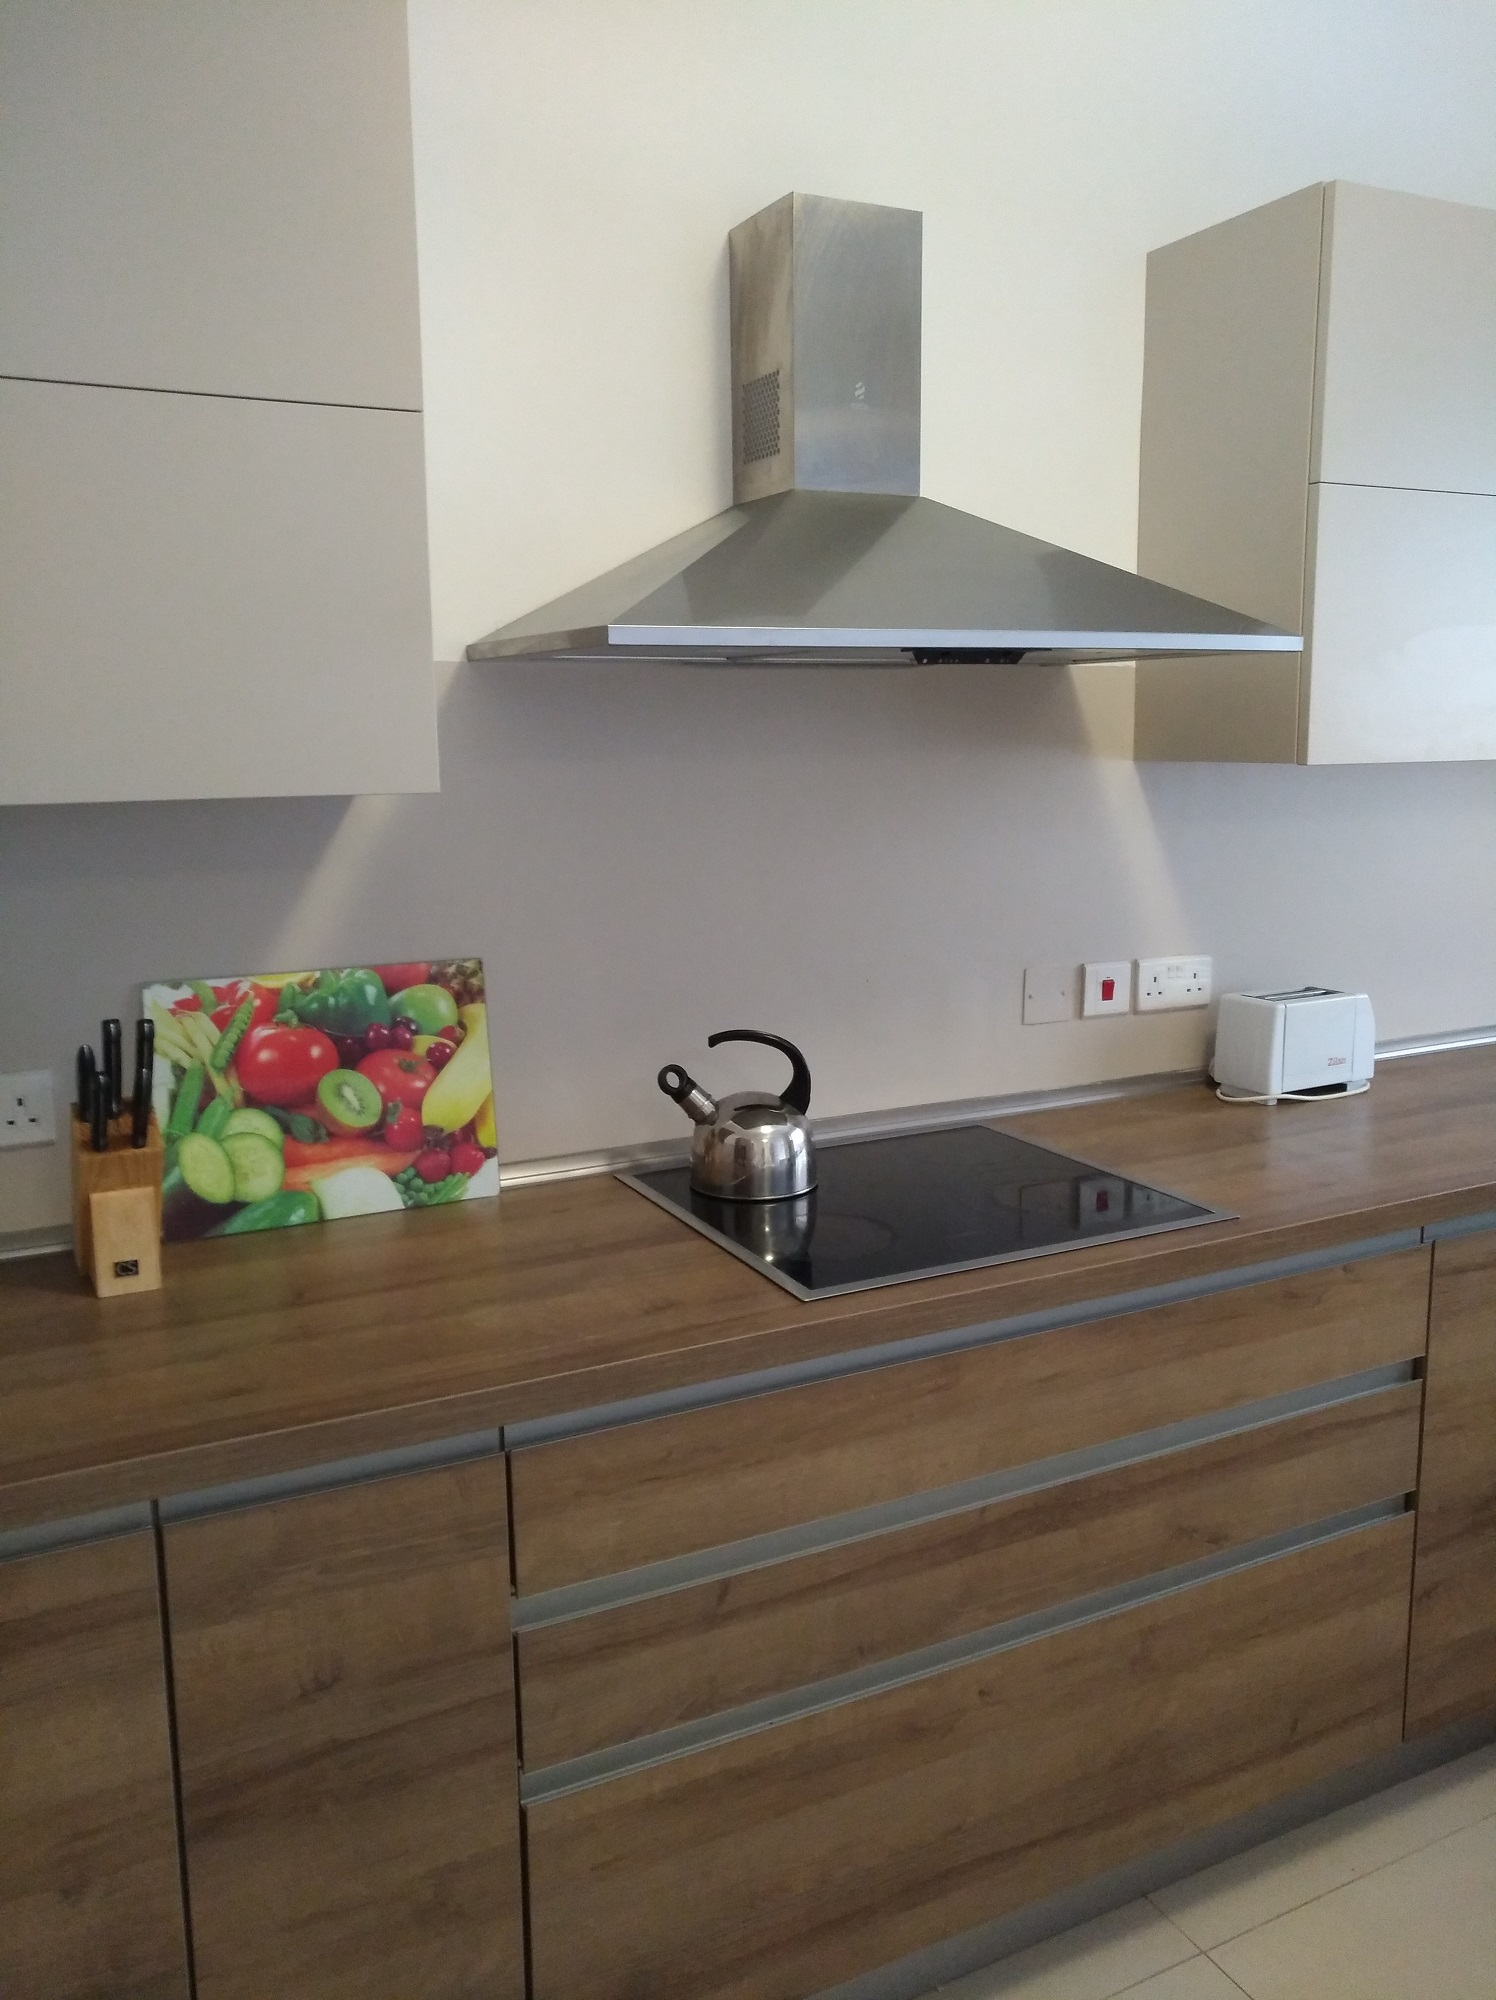 One of the kitchens at the BELS Superior Residences